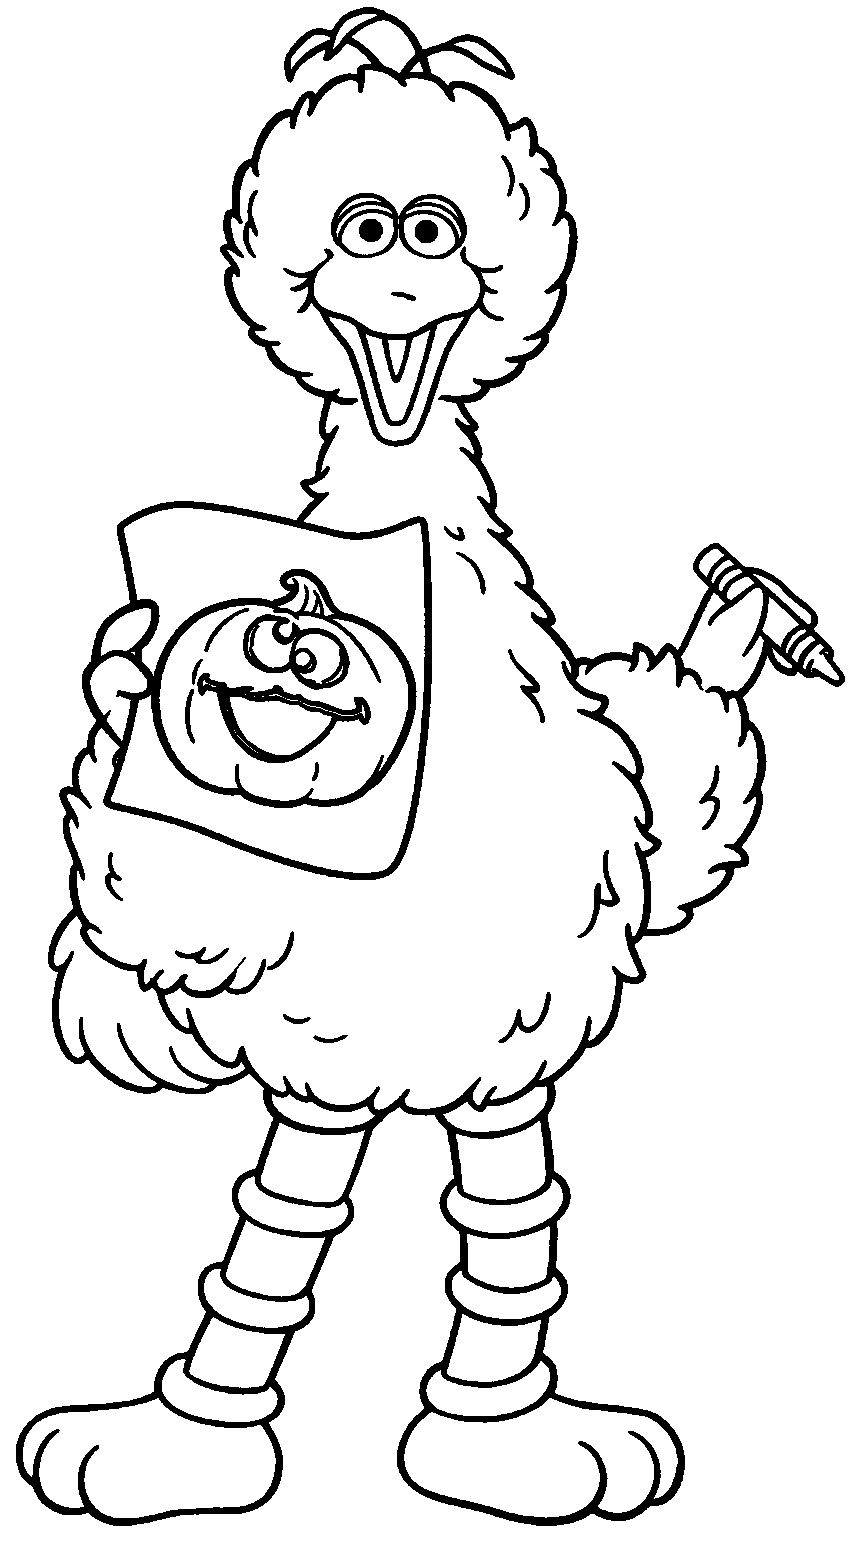 Big Bird Draw Coloring Pages For Kids Gg9 Printable Sesame Street Coloring Pages For Bird Coloring Pages Sesame Street Coloring Pages Monster Coloring Pages